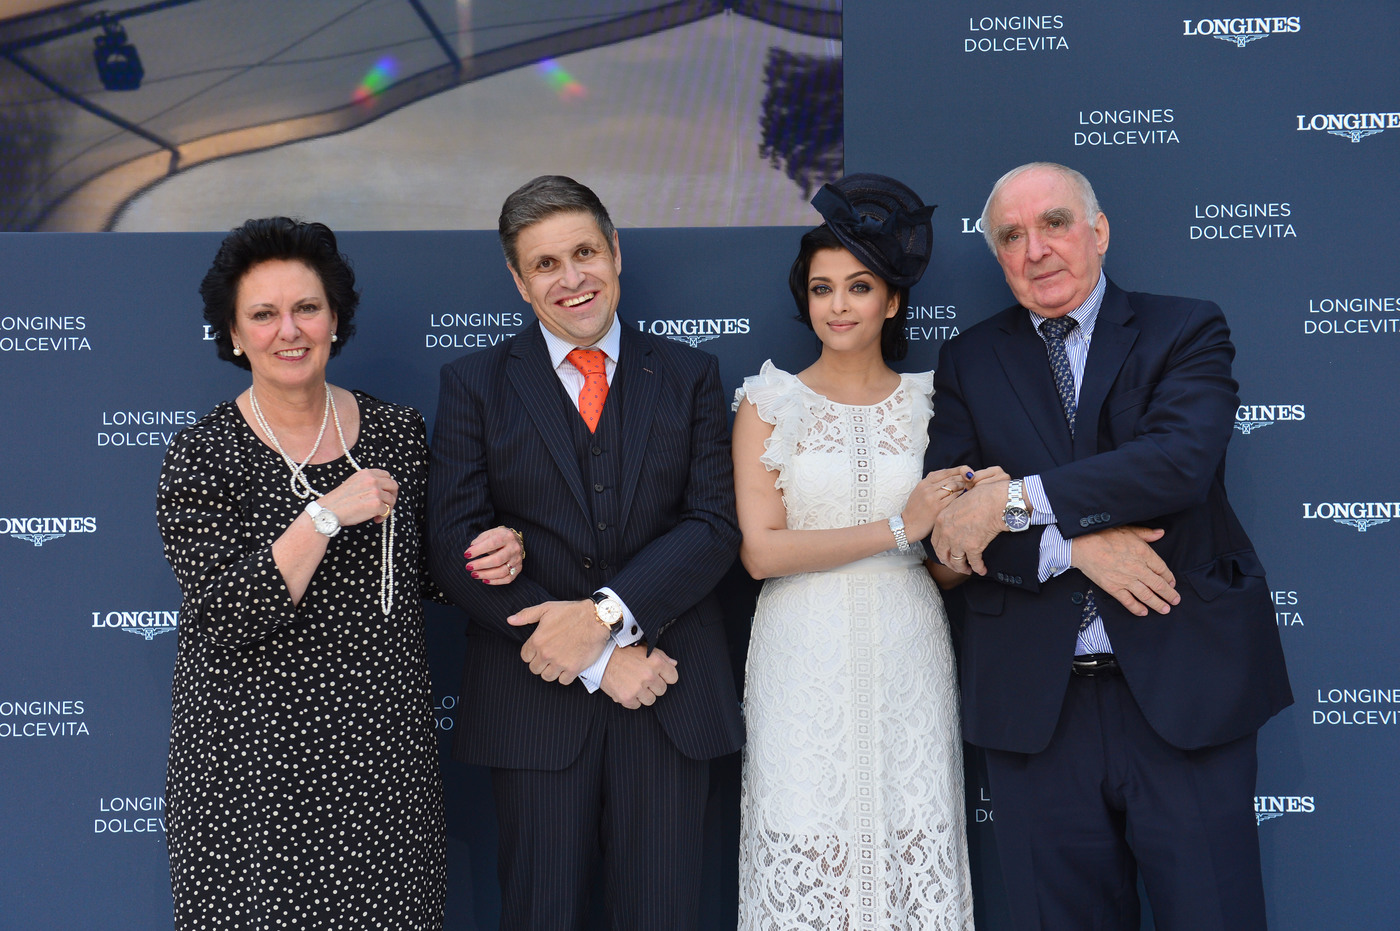 Longines Corporate Event: Longines puts the Longines DolceVita collection in the spotlight during a Garden Party  2